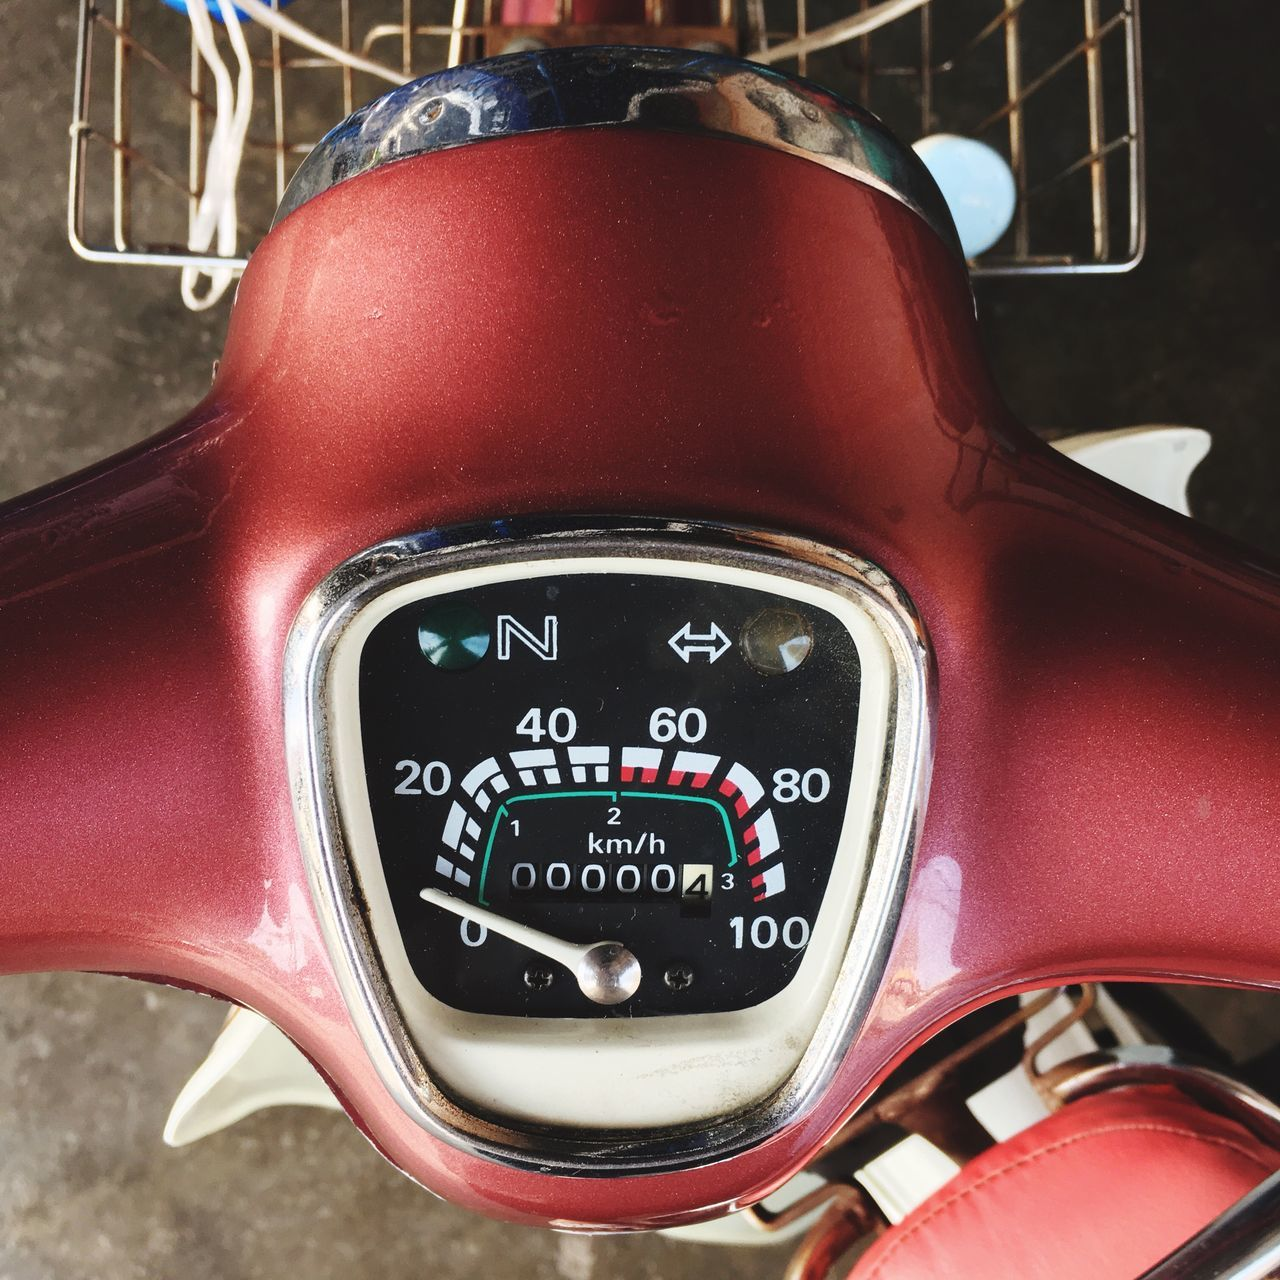 land vehicle, car, close-up, no people, mode of transport, transportation, dashboard, red, day, speedometer, outdoors